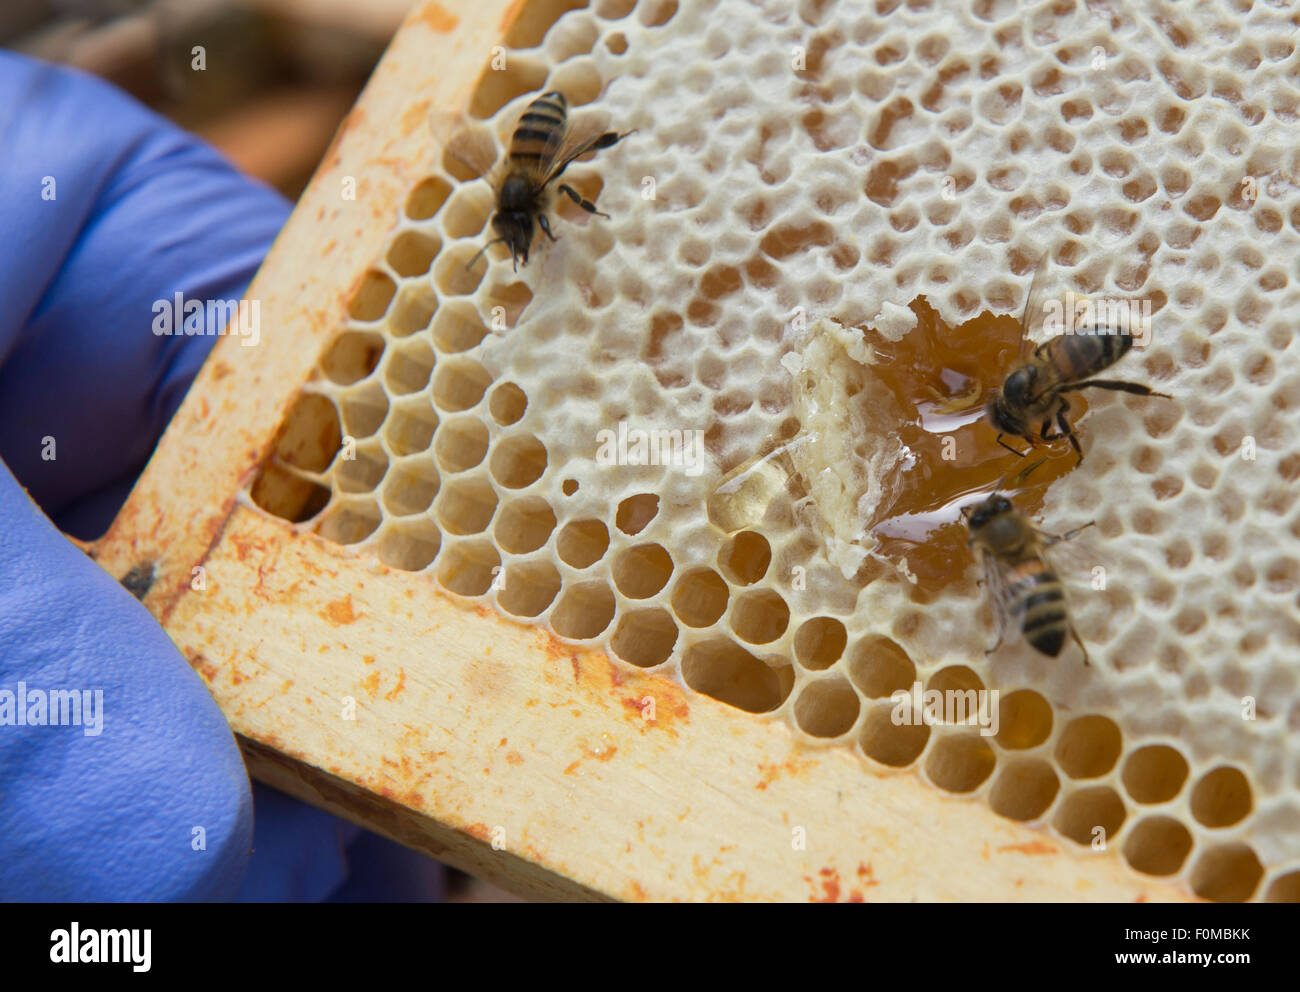 Beekeepers tend to their bees and honeycombs at Abbeydale in Sheffield - Stock Image